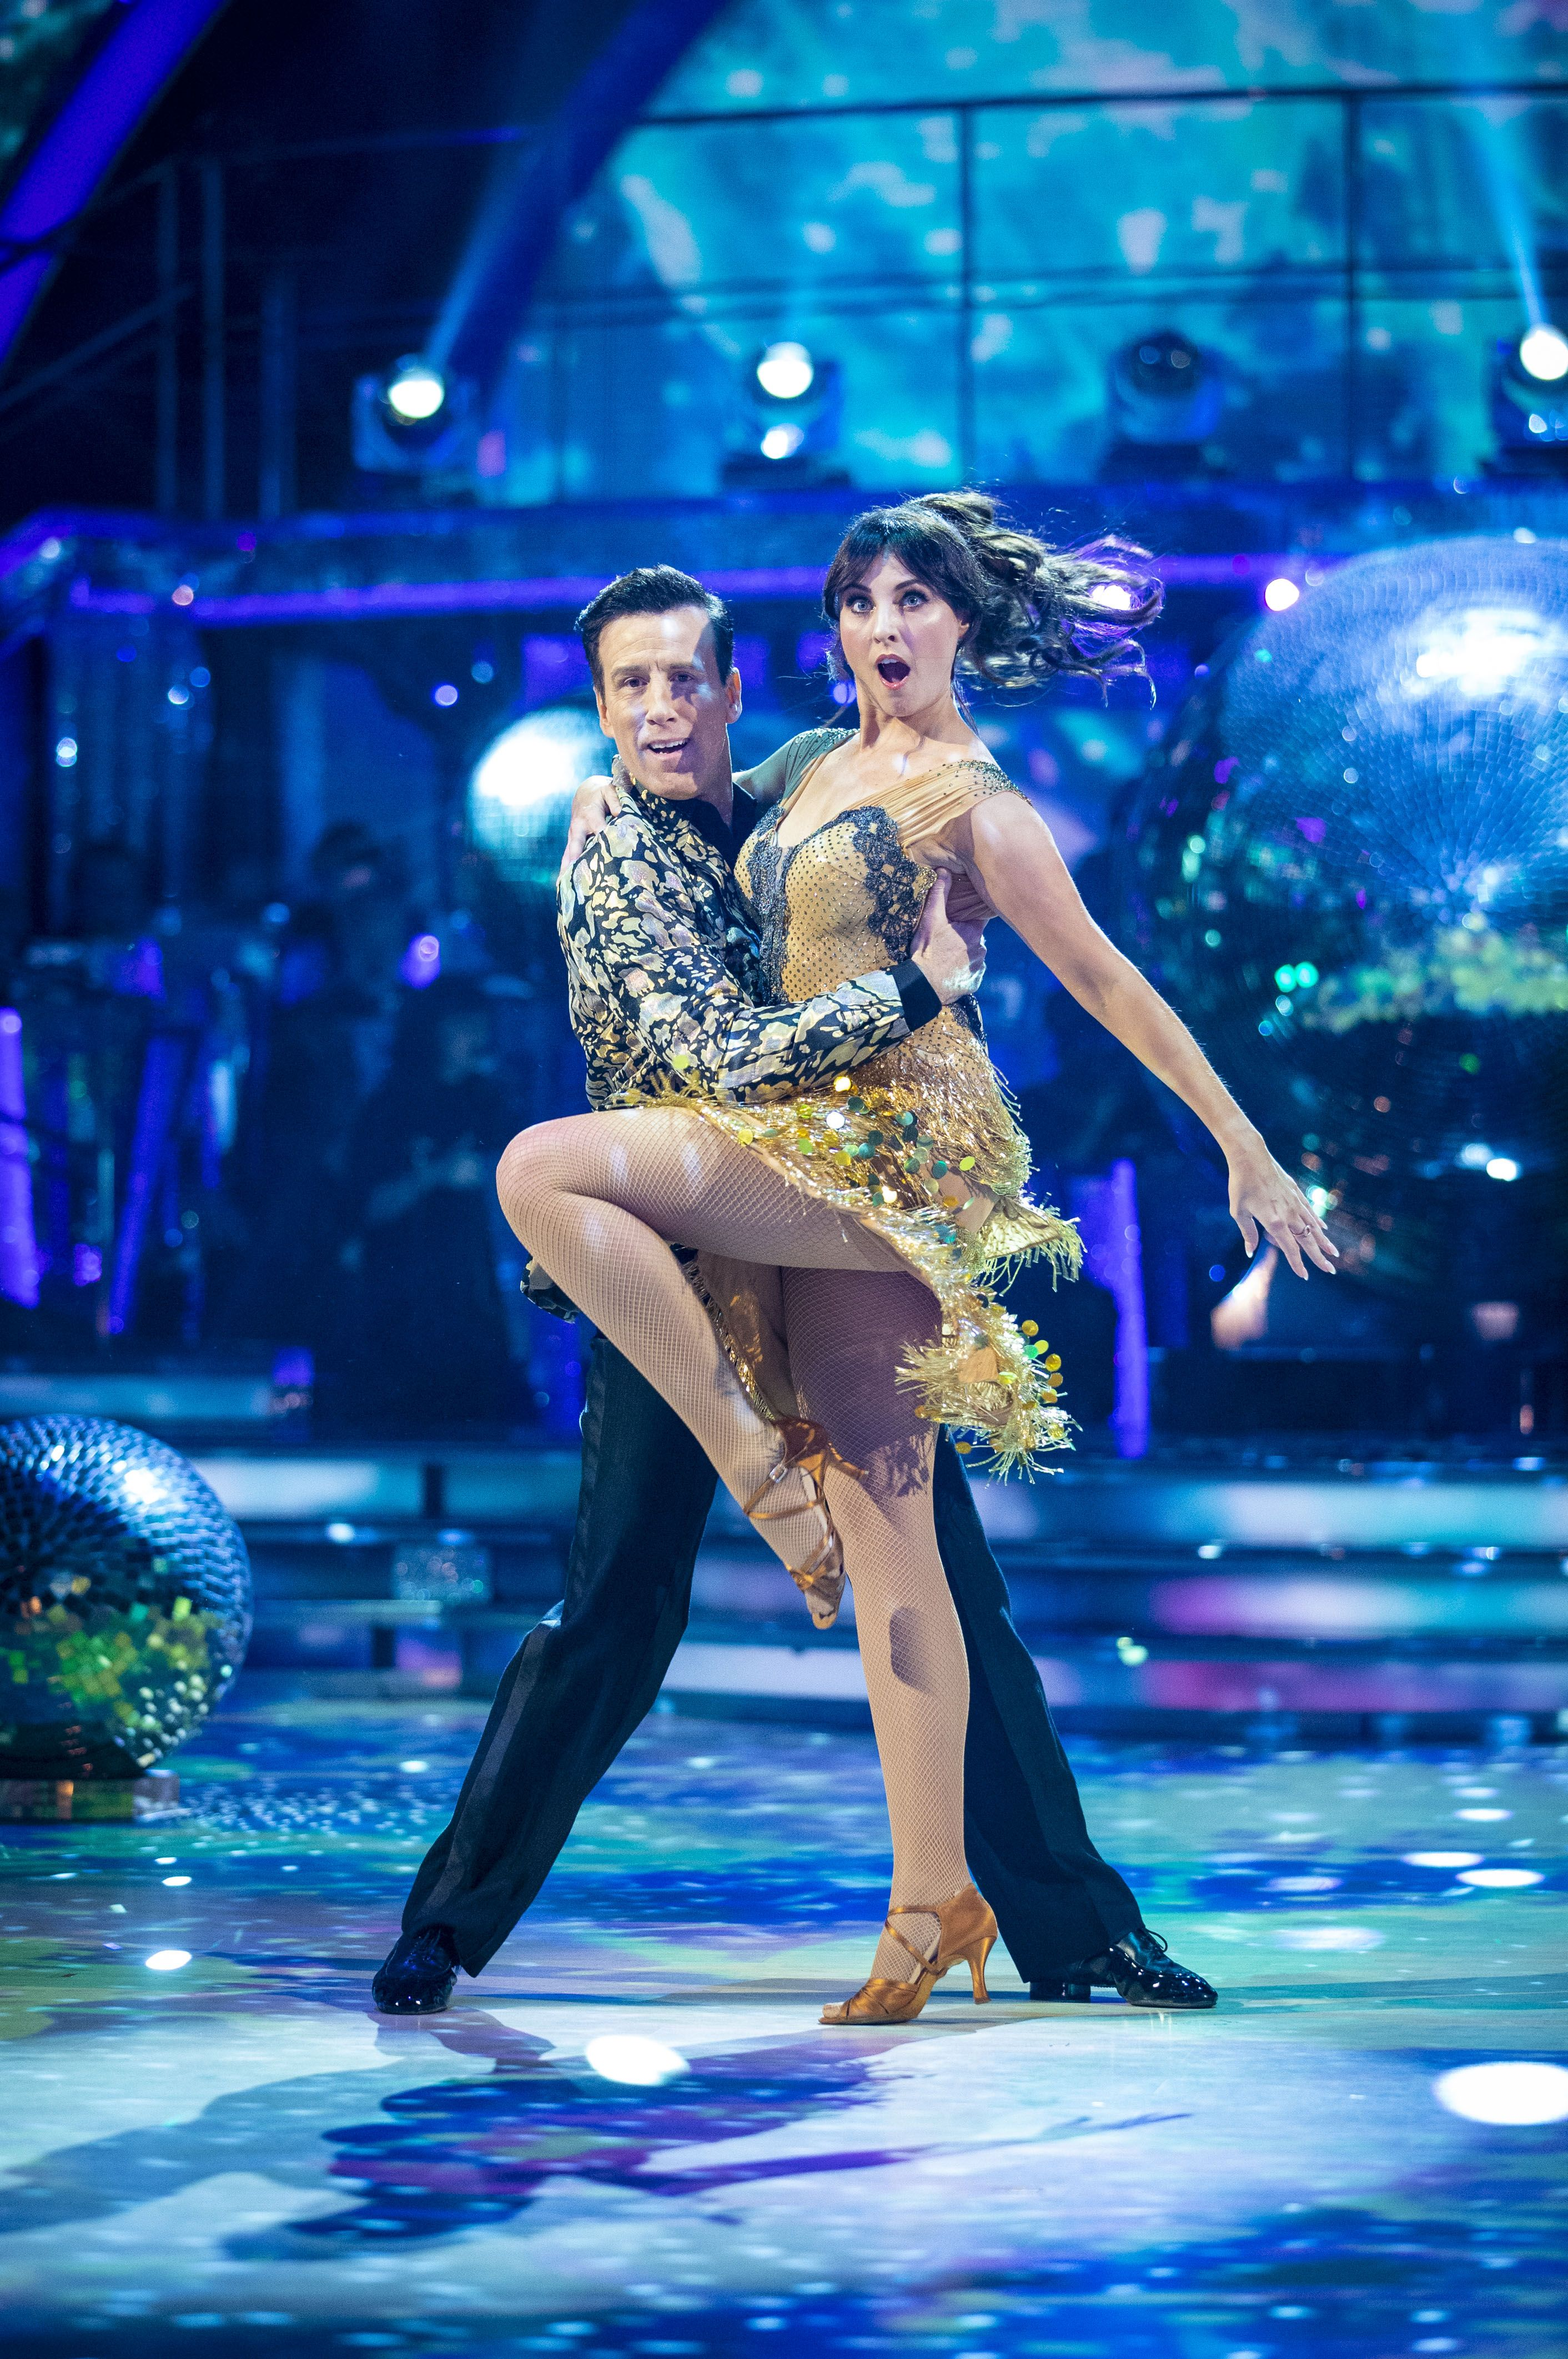 Strictly Come Dancing's Emma Barton discusses 'weird injuries' ahead of final